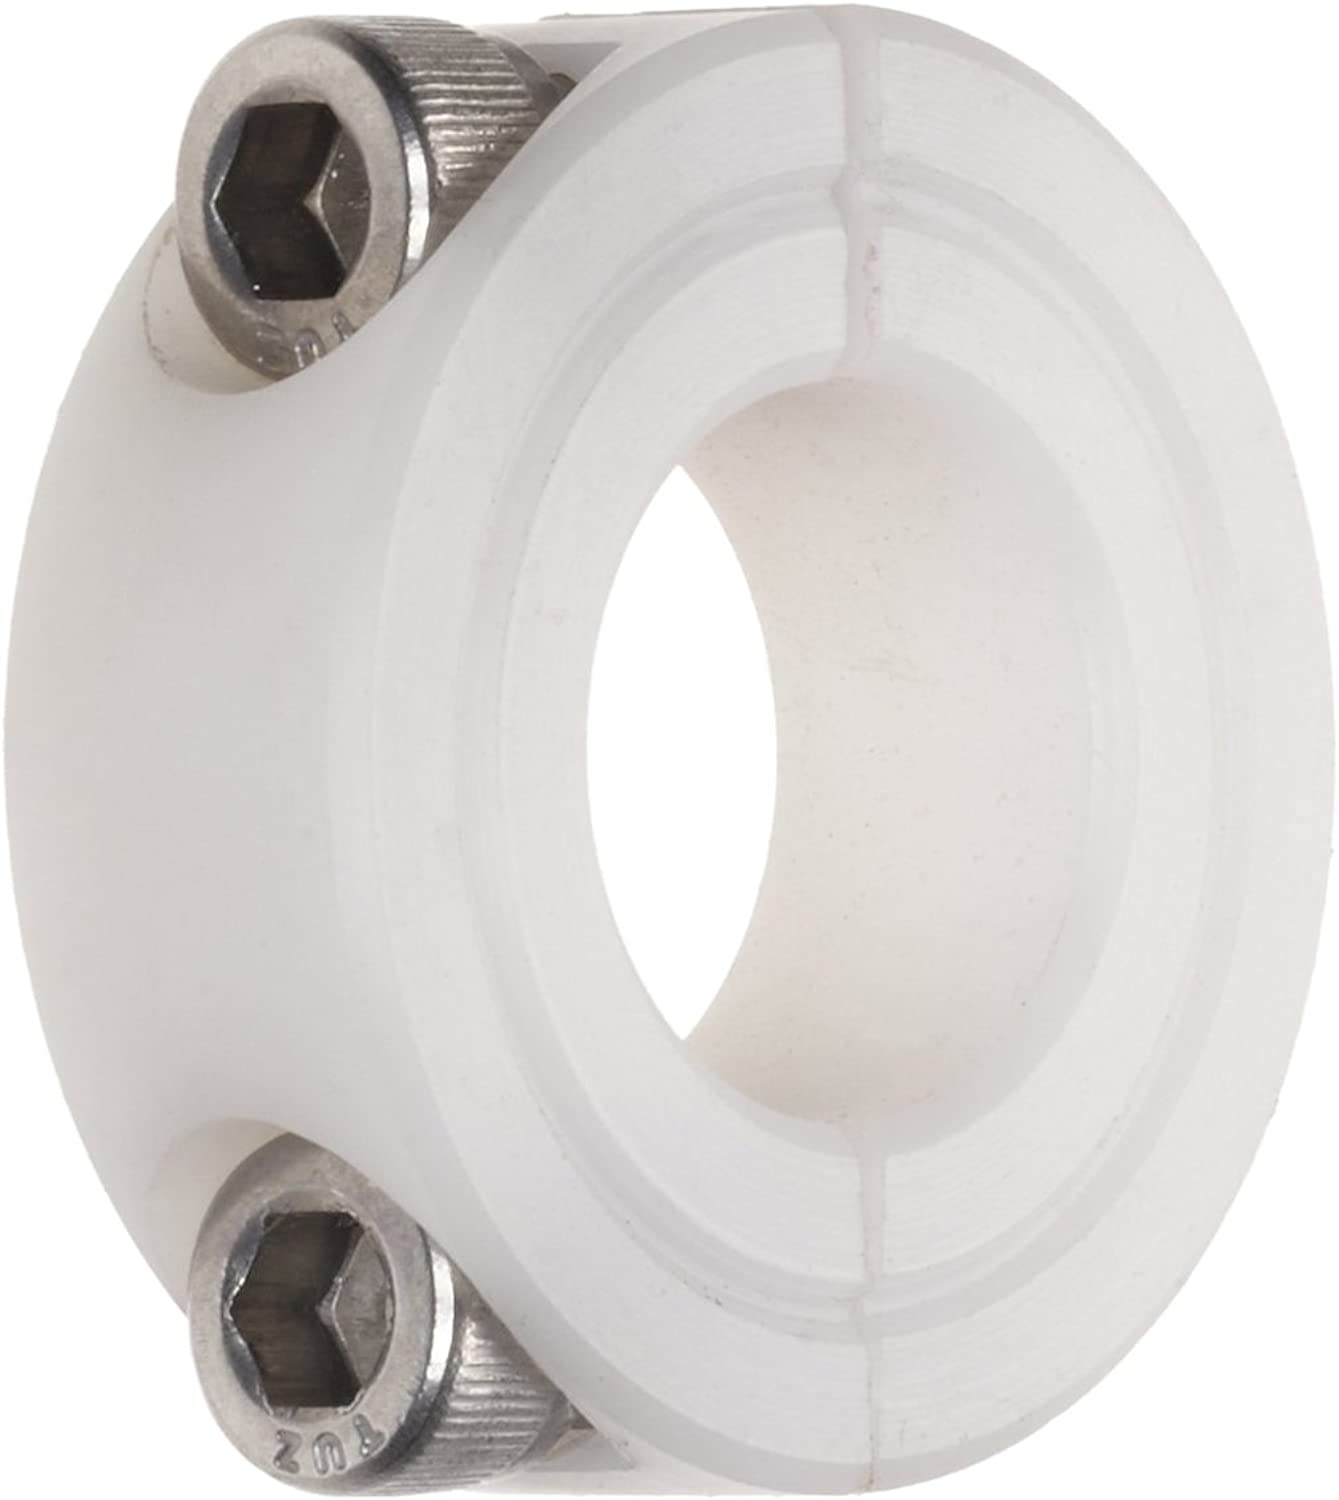 Climax Metal N2C037 Two Piece Clamping Collar, Nylon, 3 8  Bore, 7 8  OD, 11 16  Width